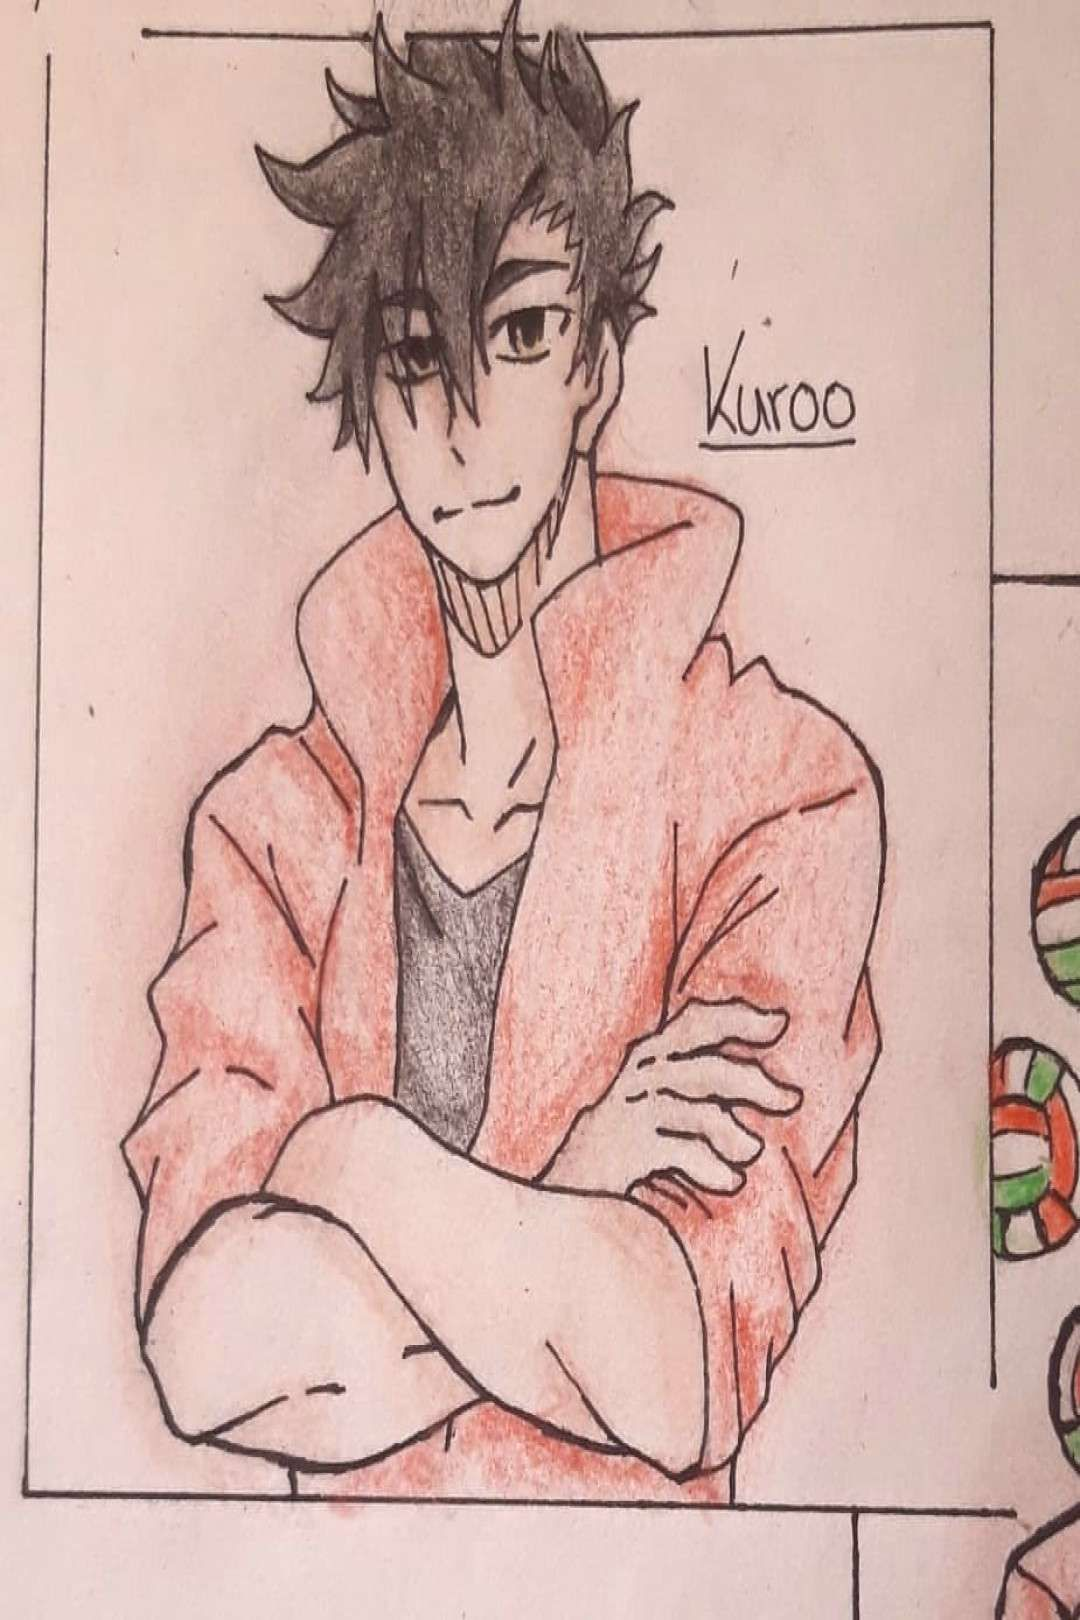 #drawingtext #favourite #charakter #haikyu #which #kuroo #post #love #your #that #says #new #and #is #i New post I love haikyu which is your favourite charakter? And I hYou can find Haikyuu and more on our website....